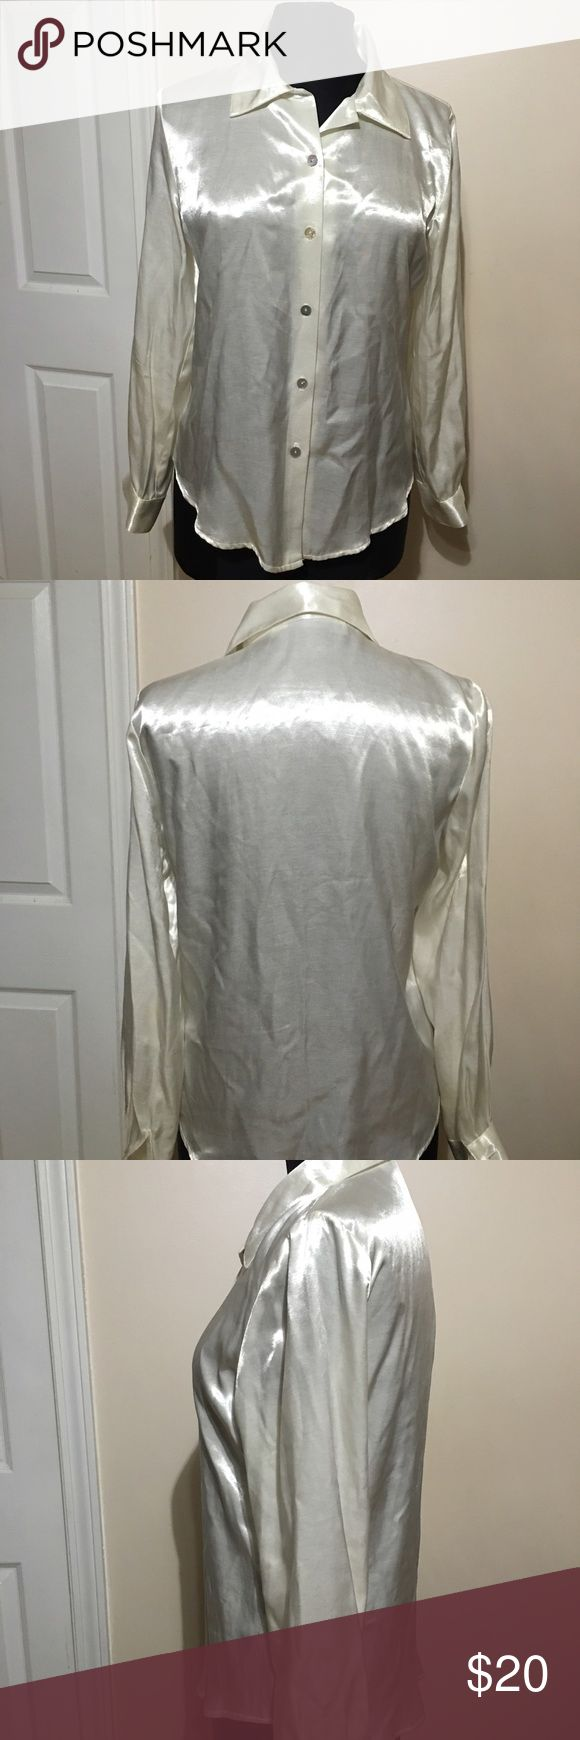 White shines satin blouse Beautiful bright white satin blouse with mother pearl type buttons great for all these holiday parties size small Tops Button Down Shirts